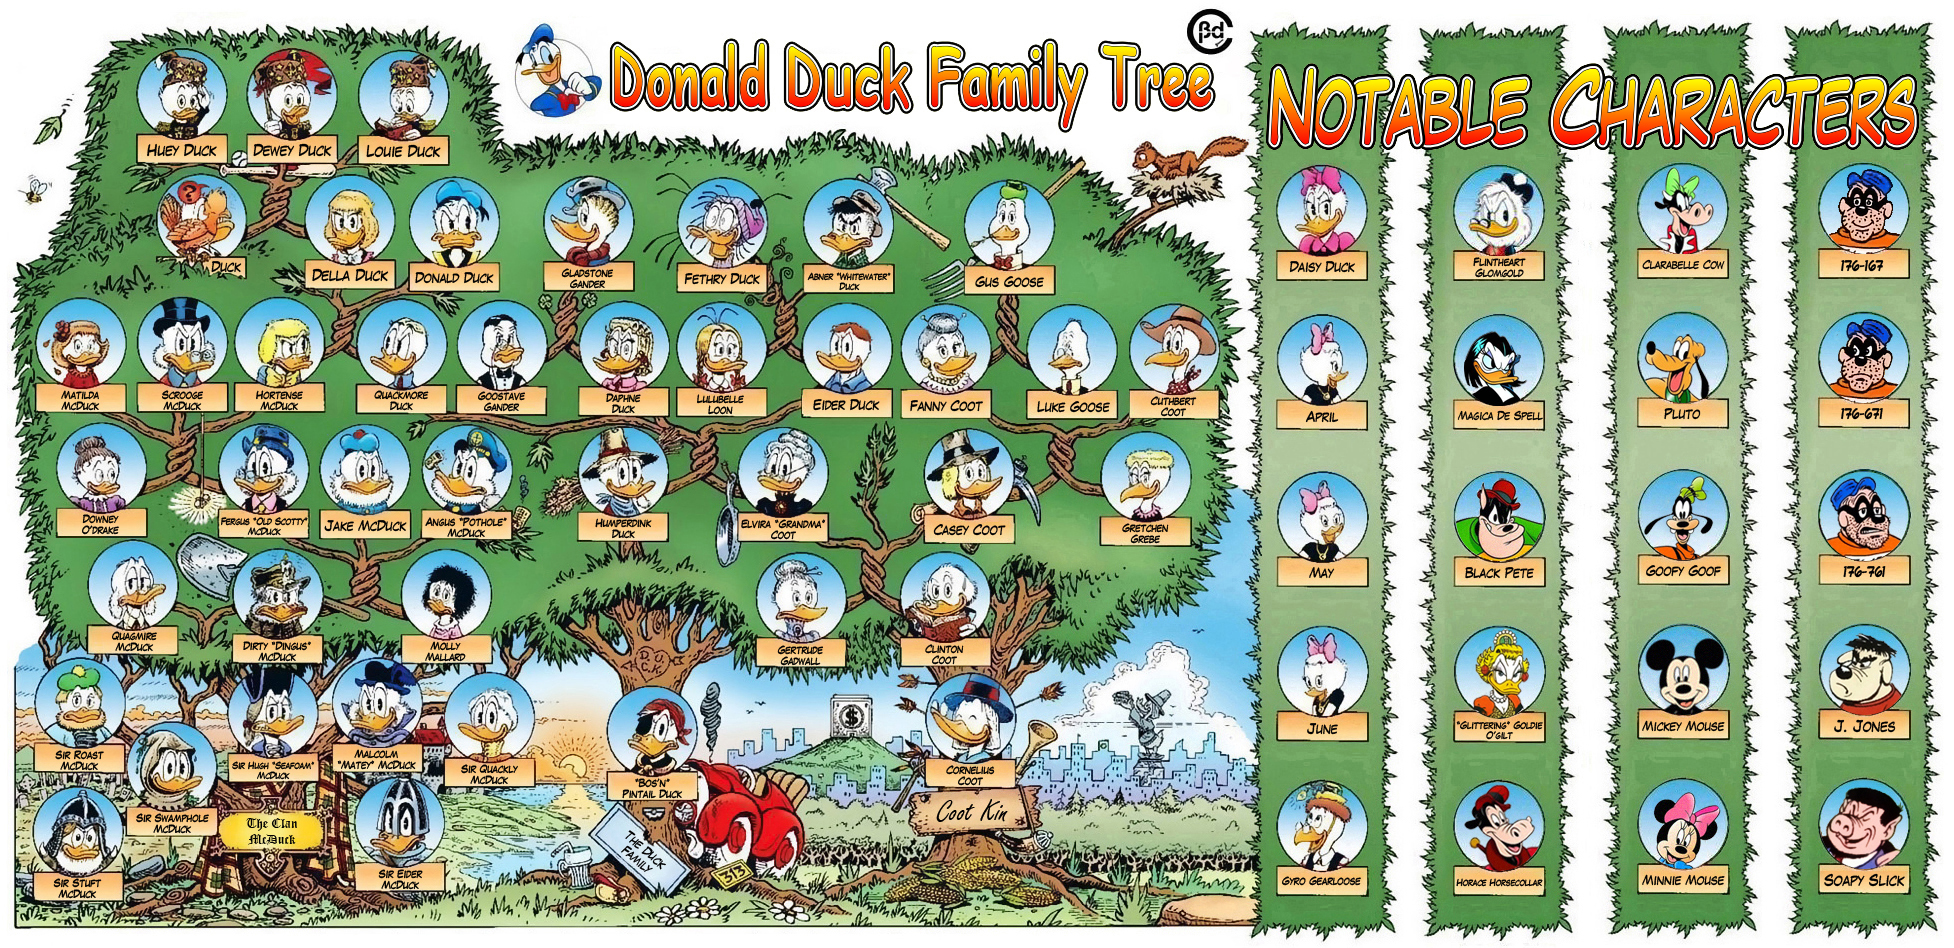 Lesser Known Relatives Of Famous Cartoon Characters Cartoon tree transparent images (6,688). famous cartoon characters